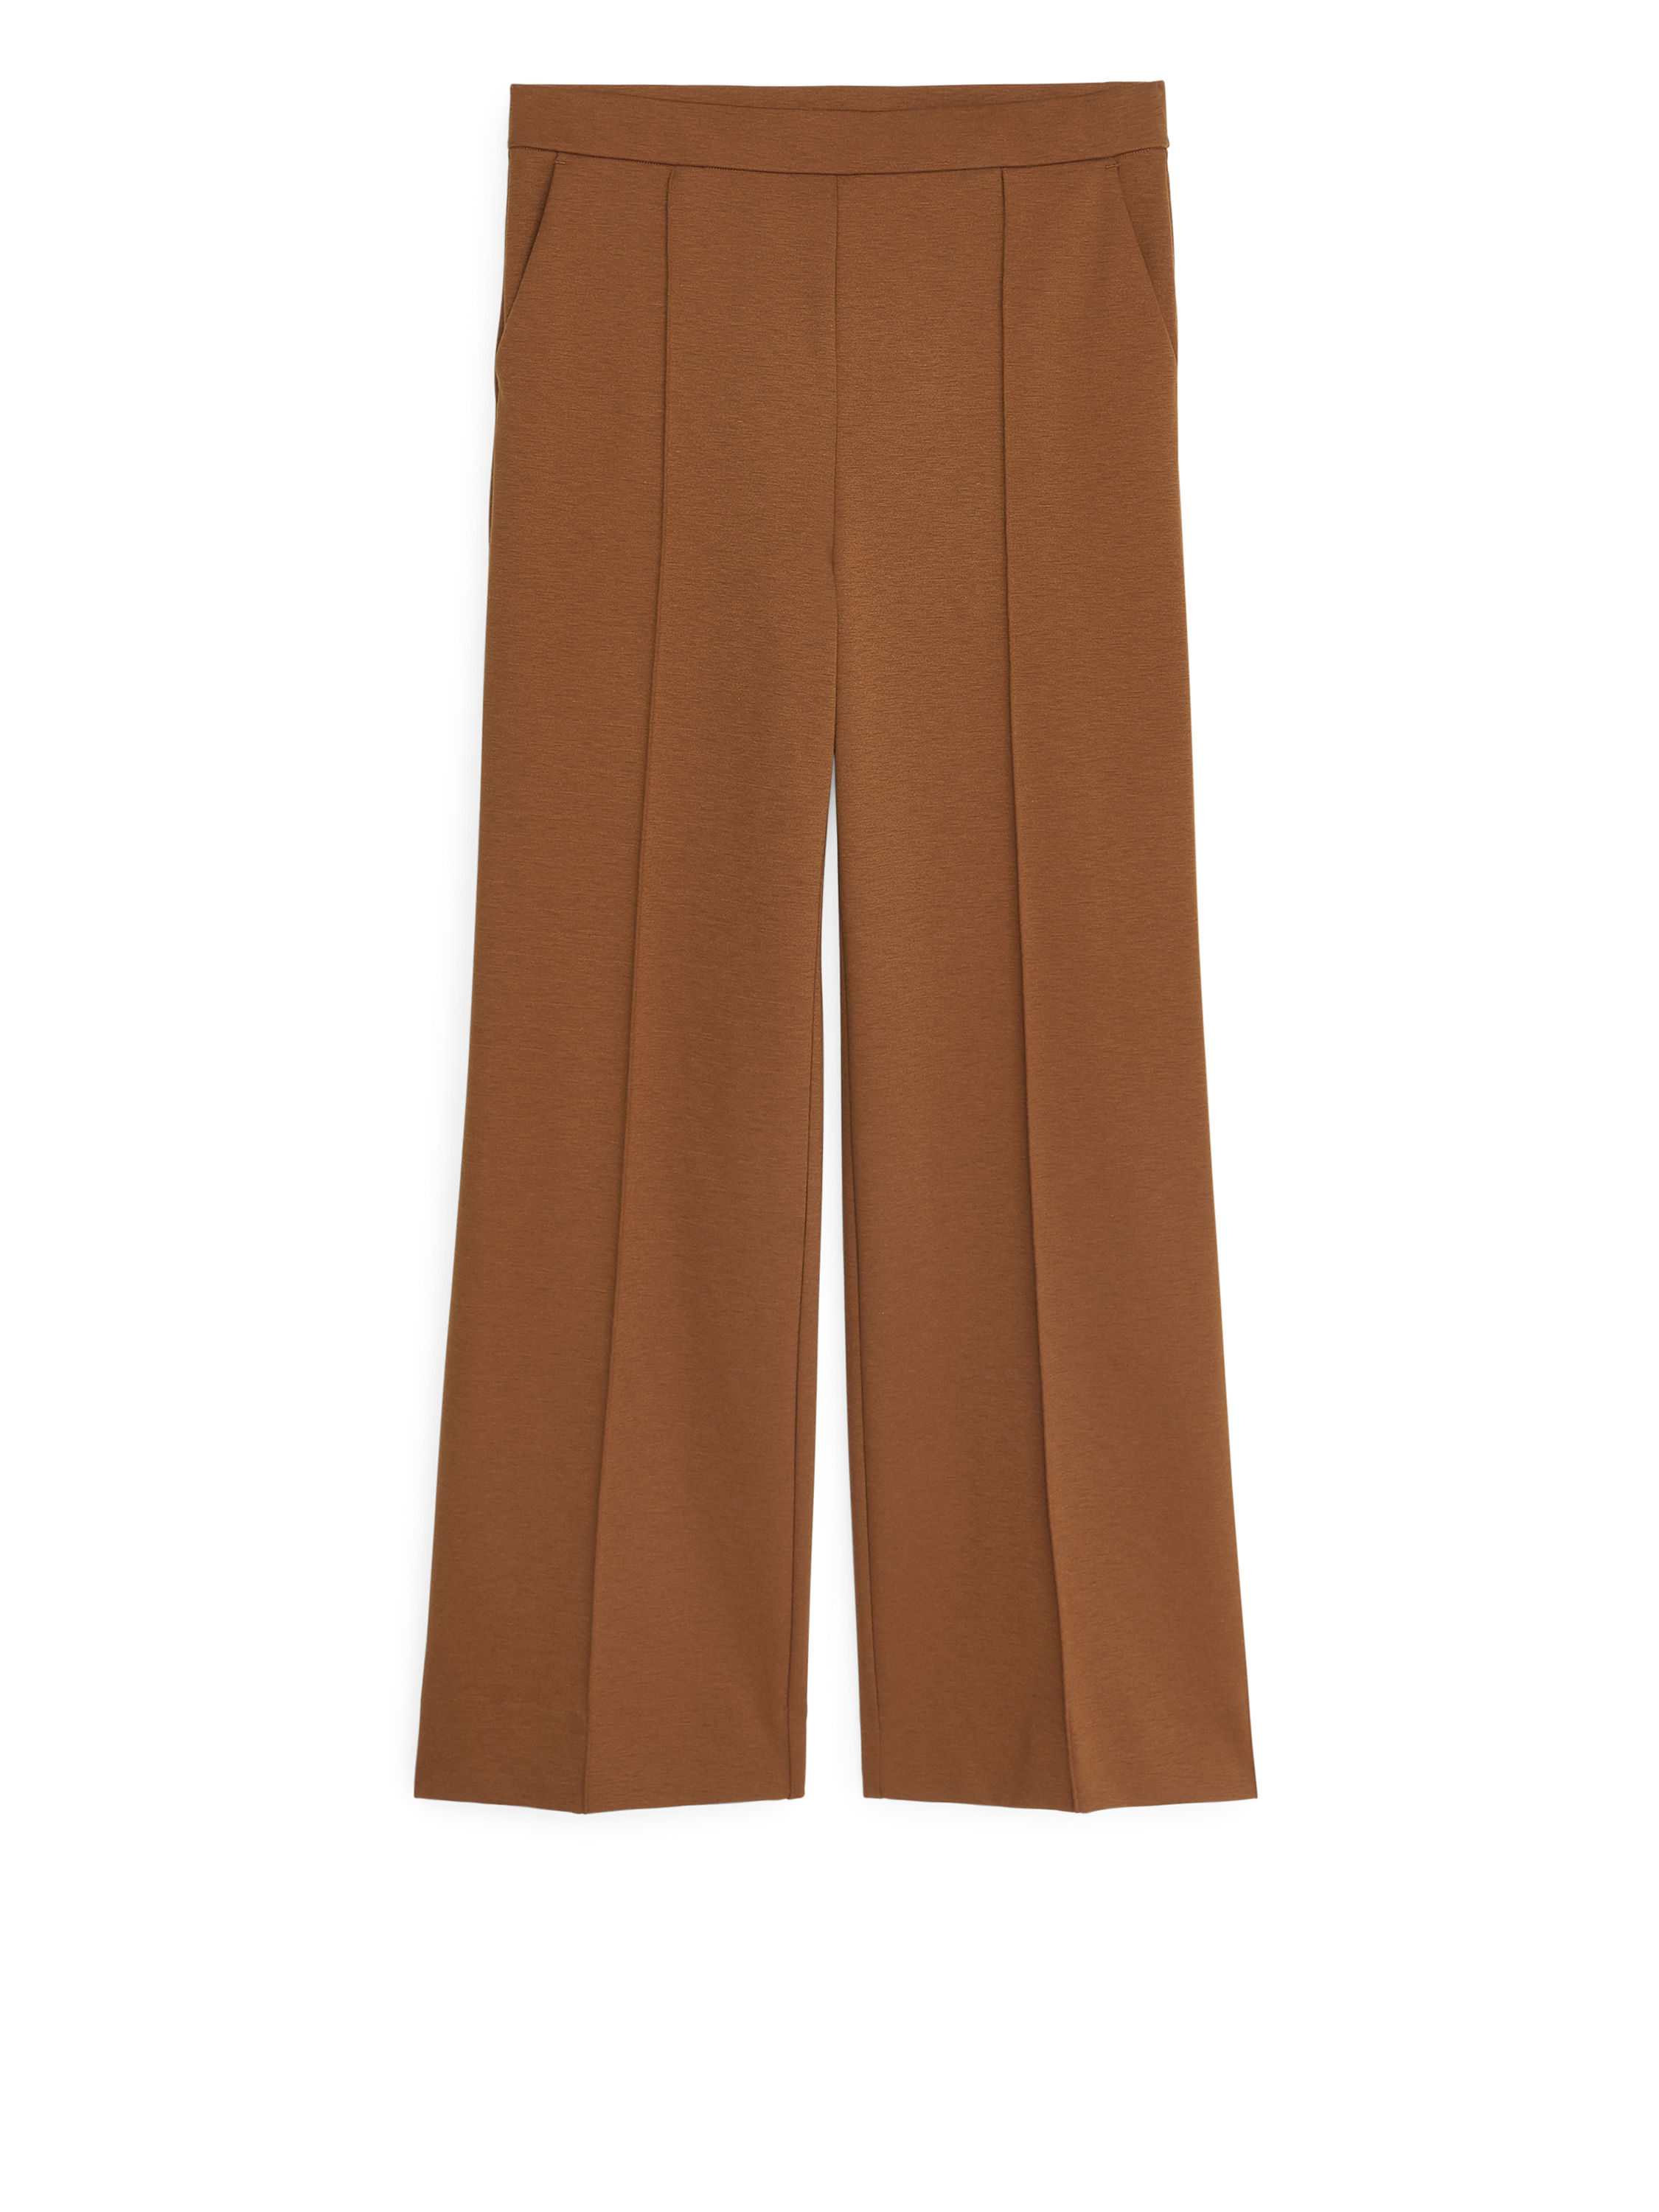 Fabric Swatch image of Arket milano rib trousers in beige